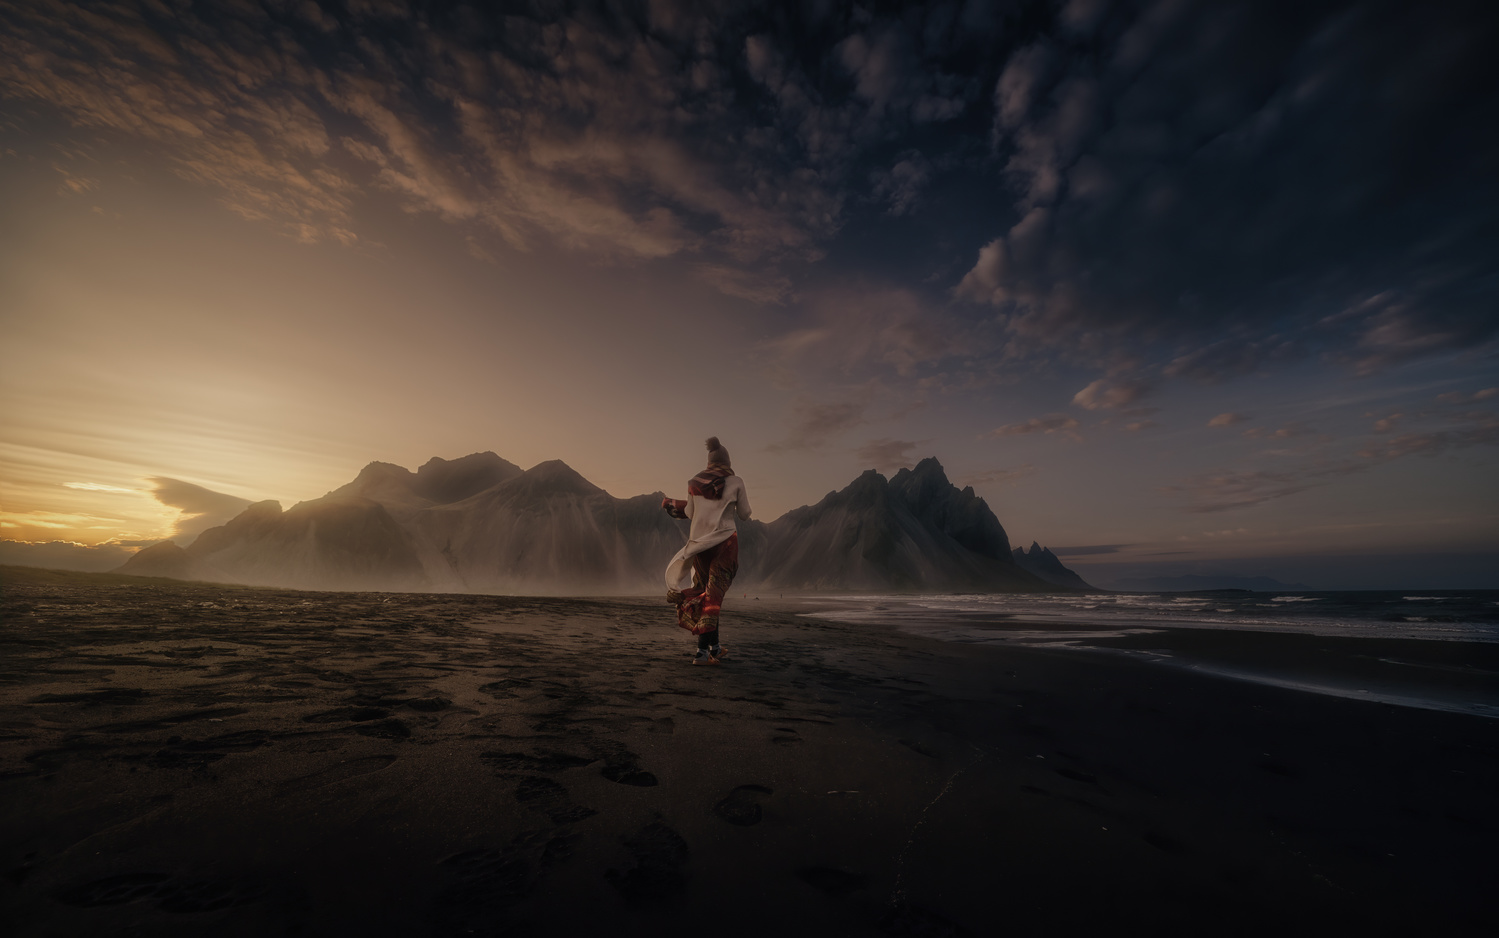 The sounds of the wind in Stokksnes by DaniGviews /Daniel